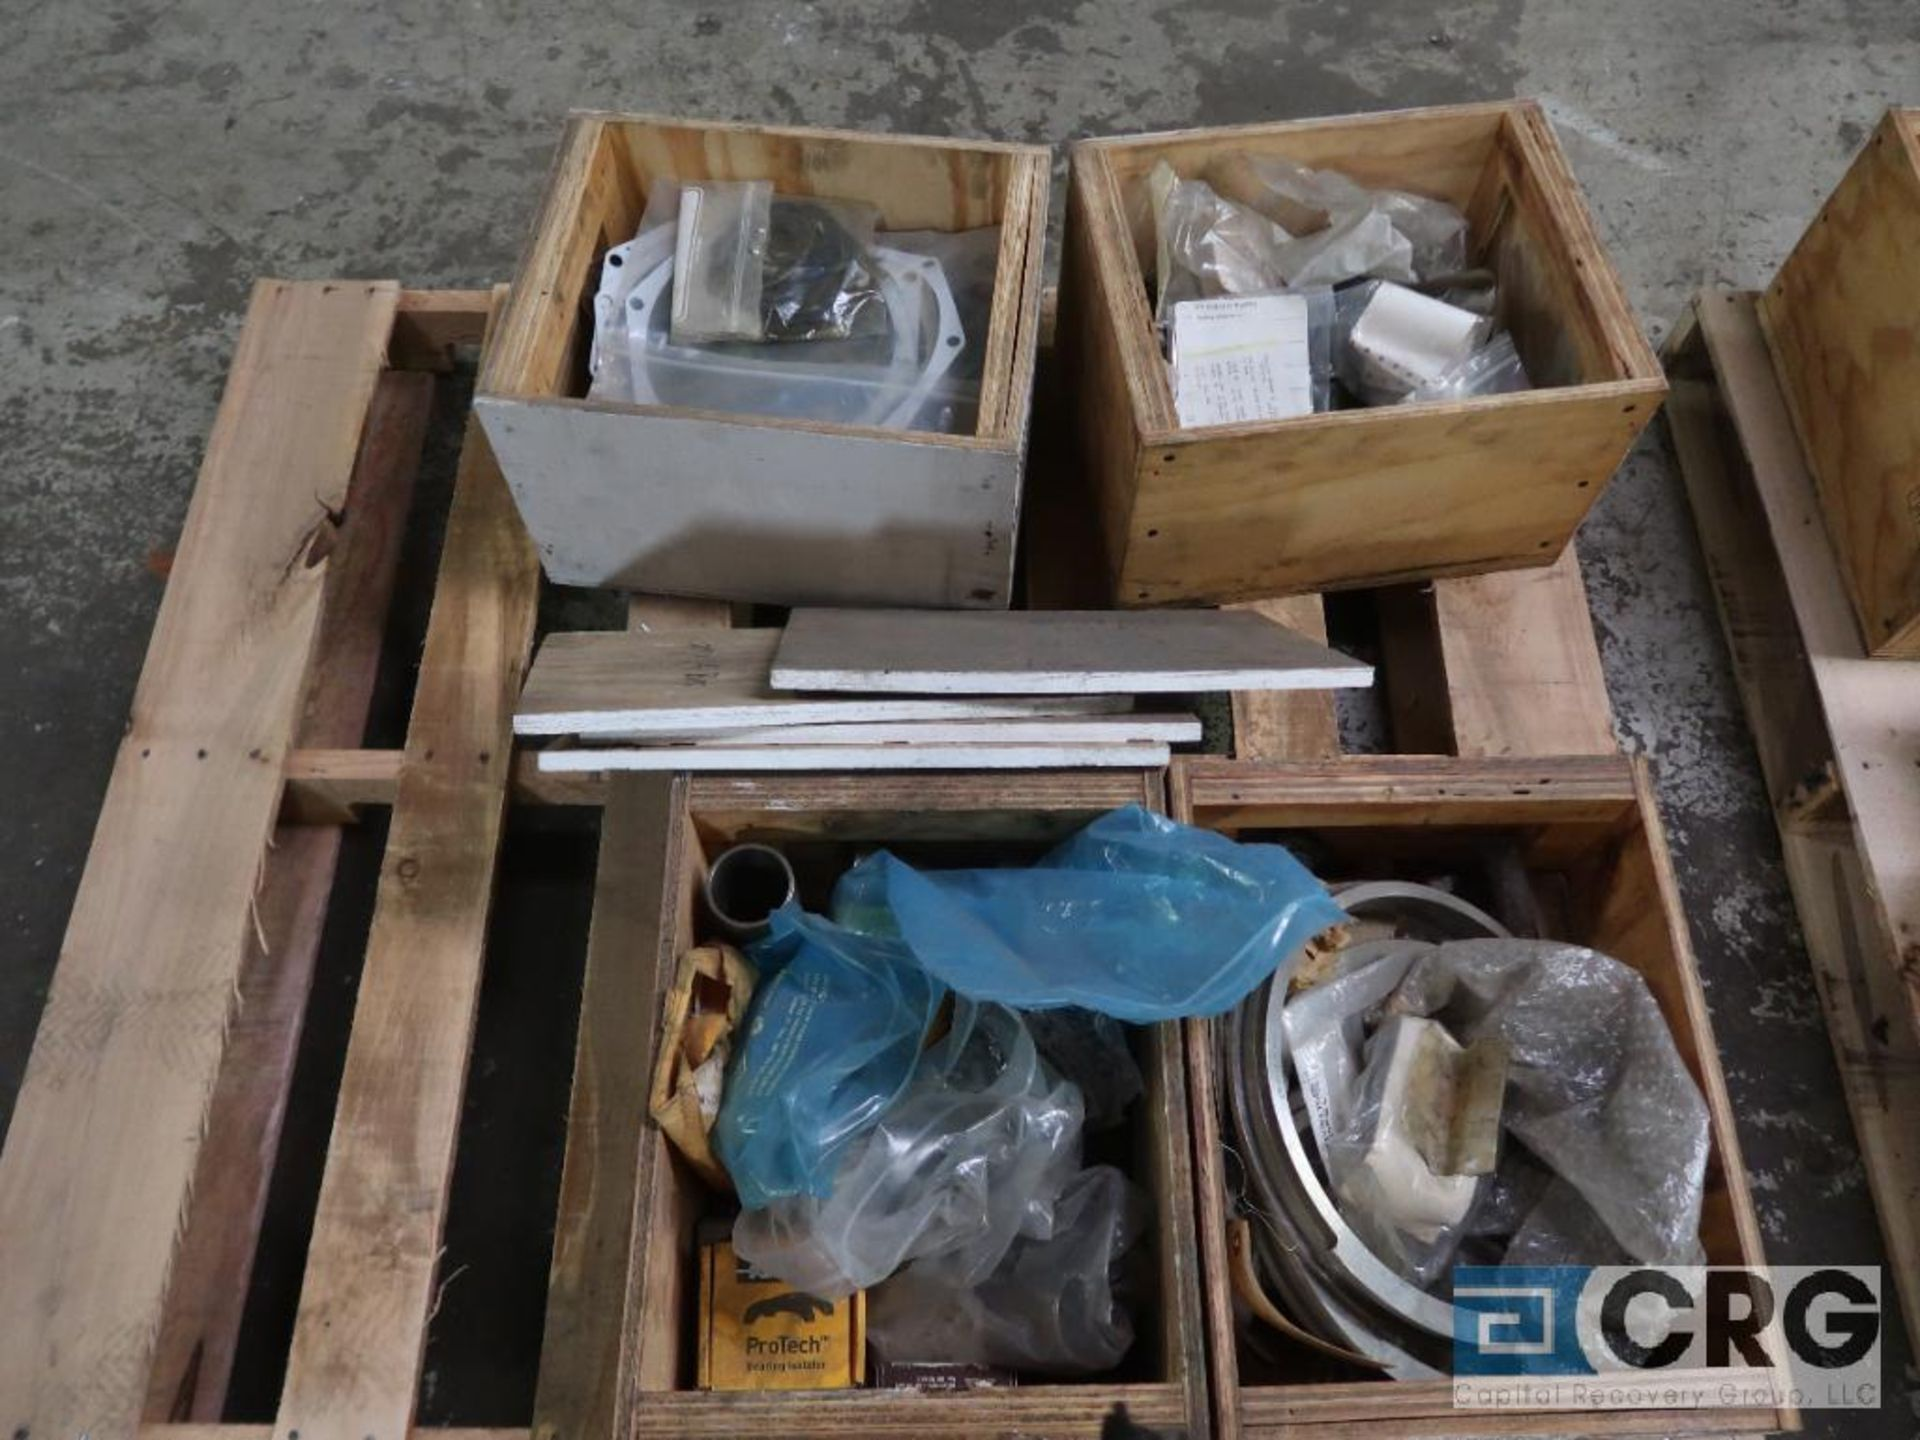 Lot of assorted Goulds 3410 pump parts including sleeves, bearings, and housings (Basement Stores)